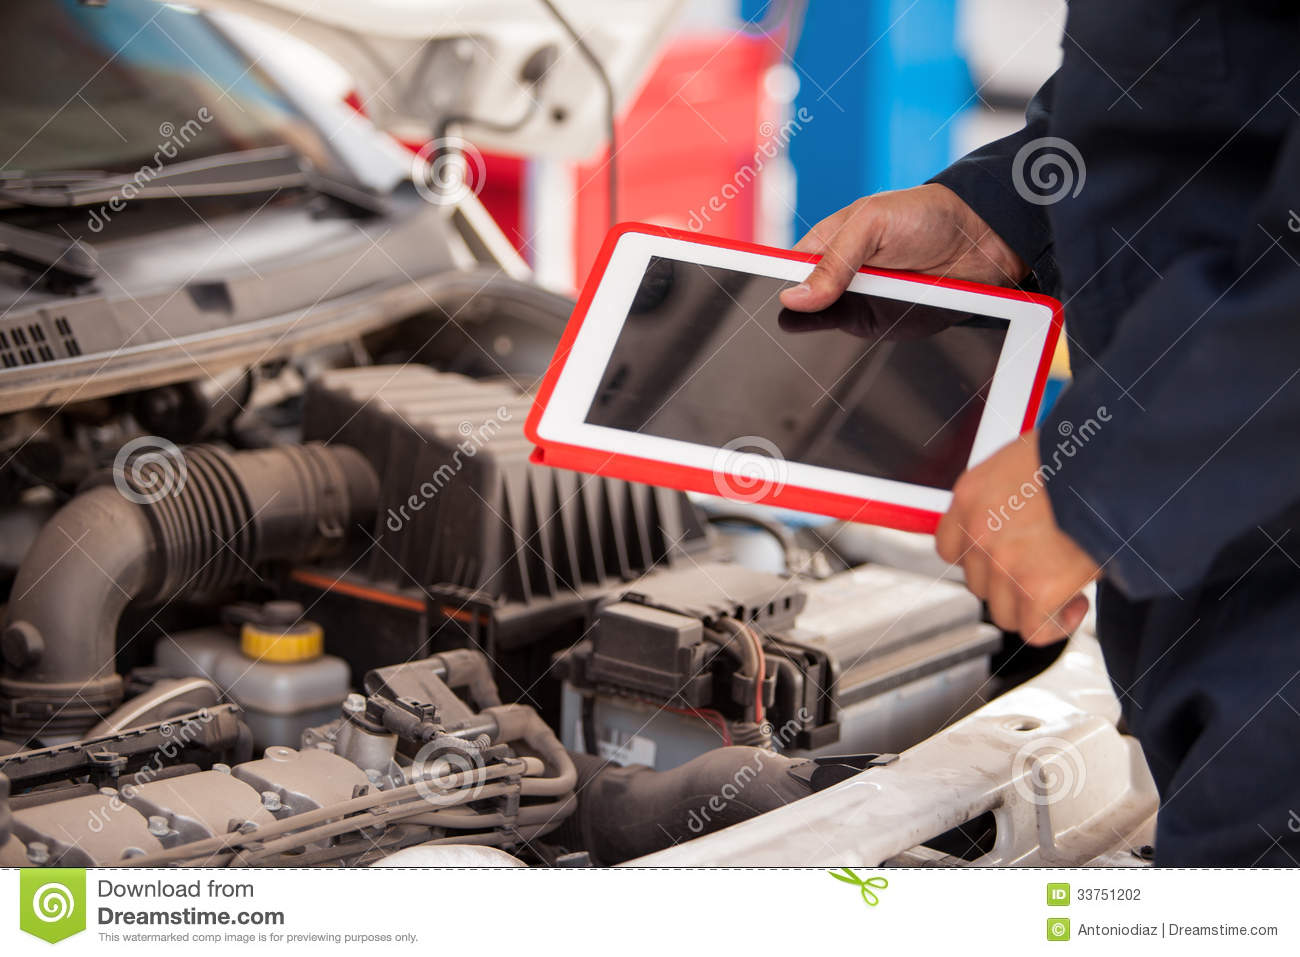 Car Inspection Checklist >> Using Tablet Computer In Auto Shop Stock Photo - Image of hood, tablet: 33751202